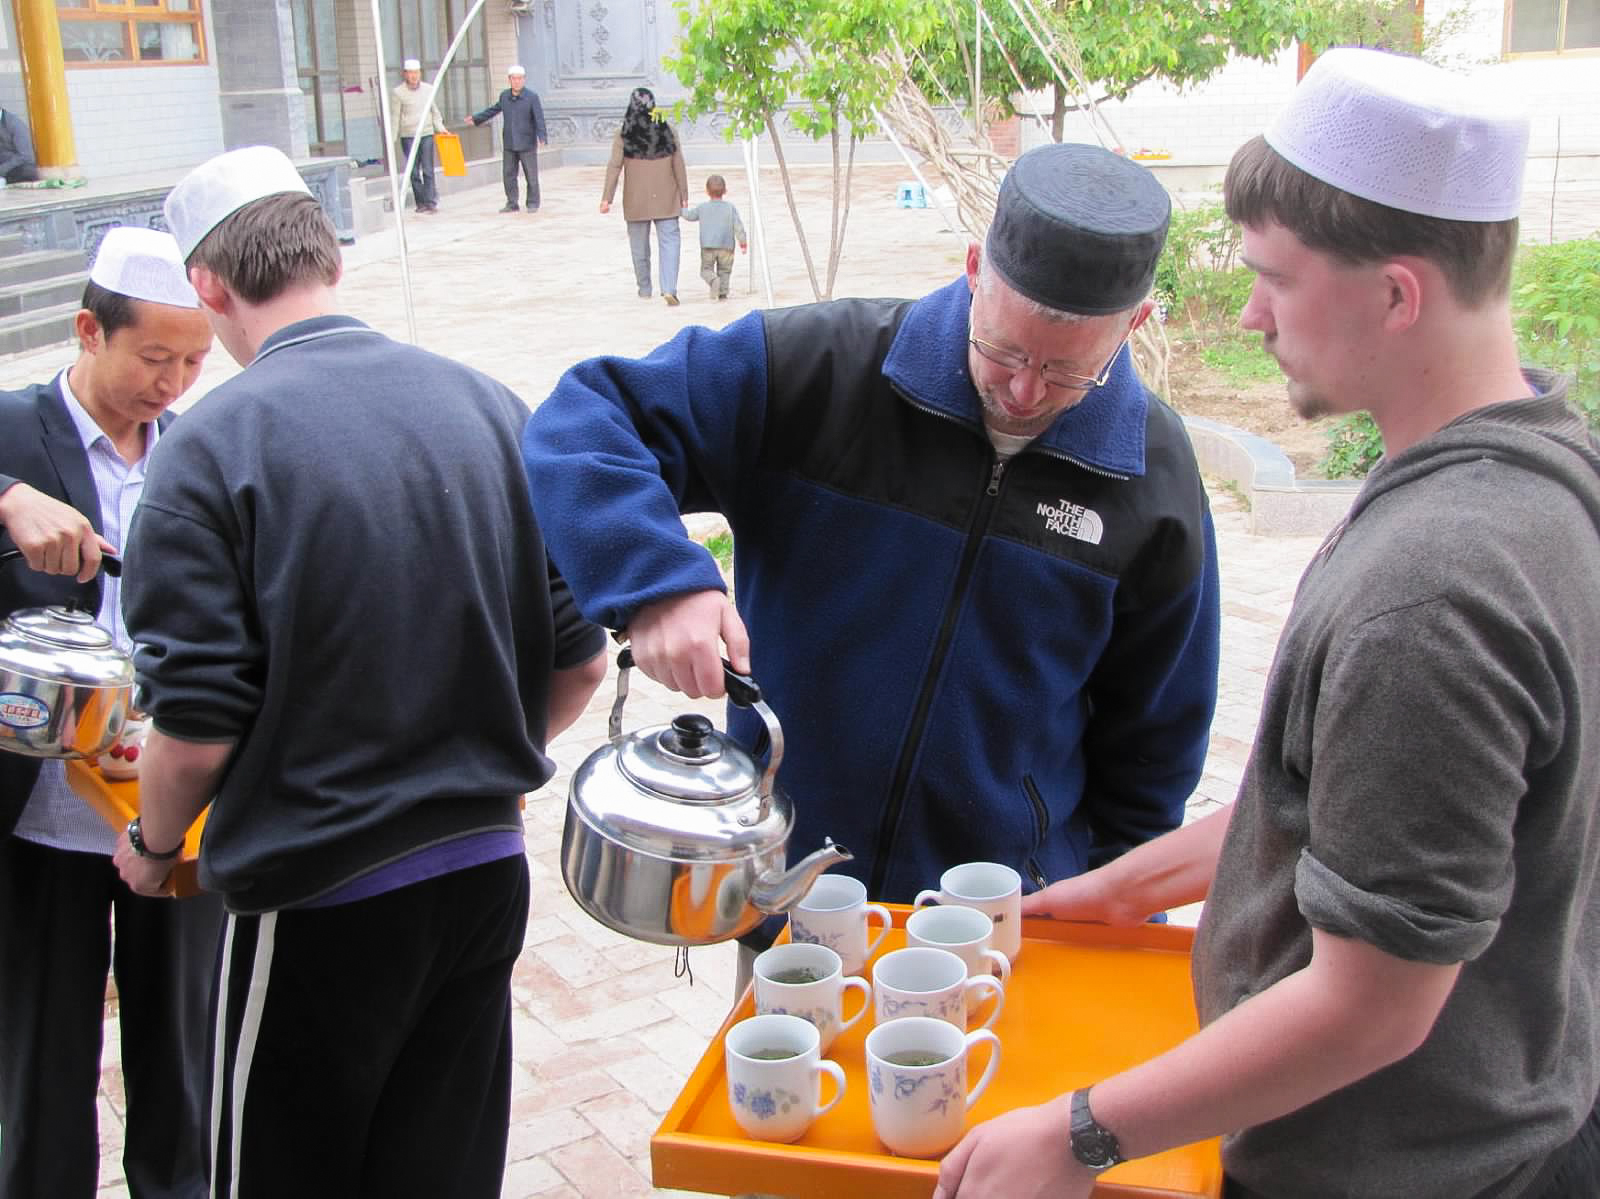 Filling cups of tea to serve